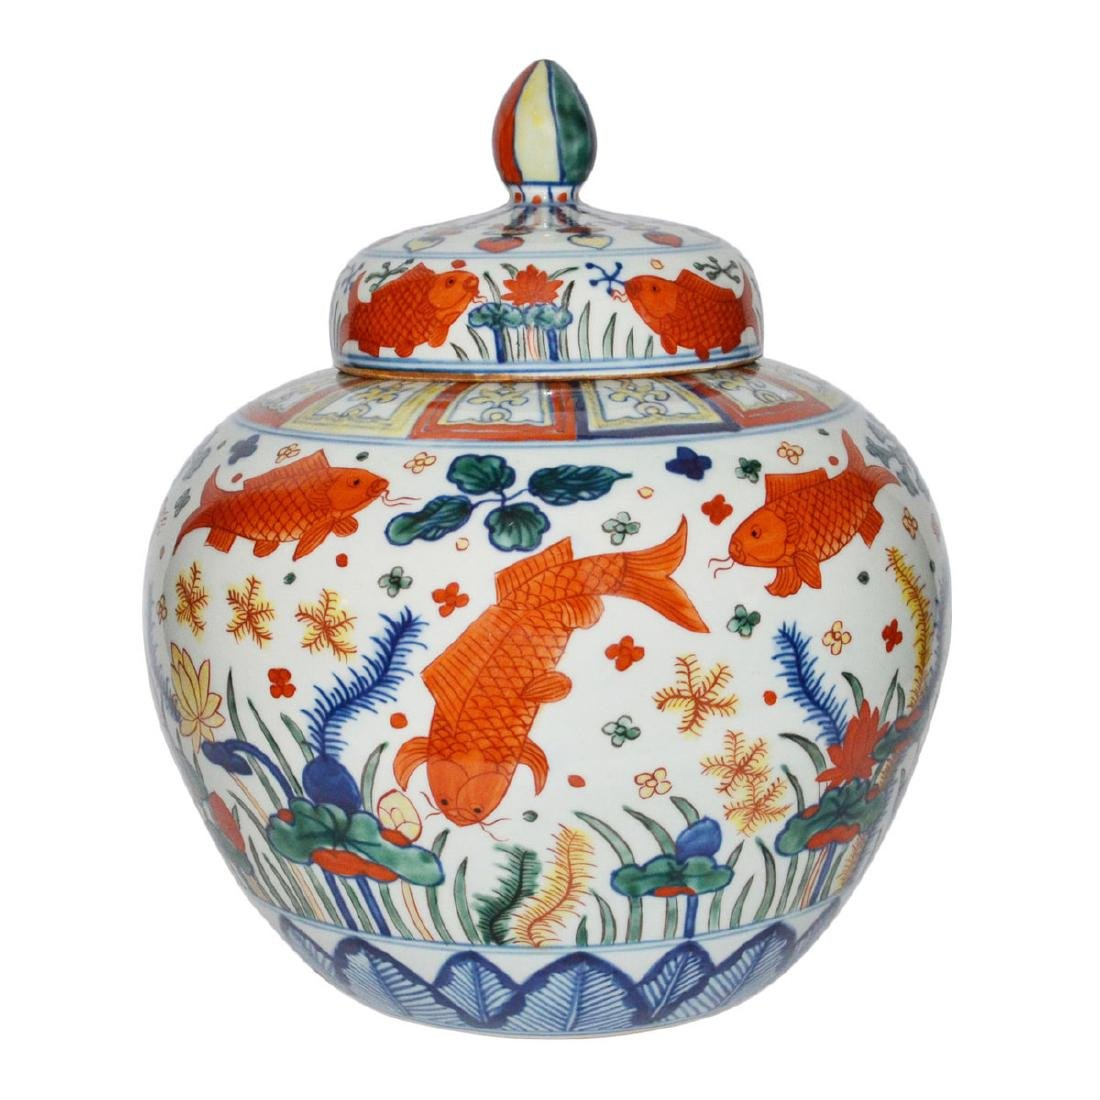 Ming, A Very Rare and Magnificent Wucai Fish Jar with